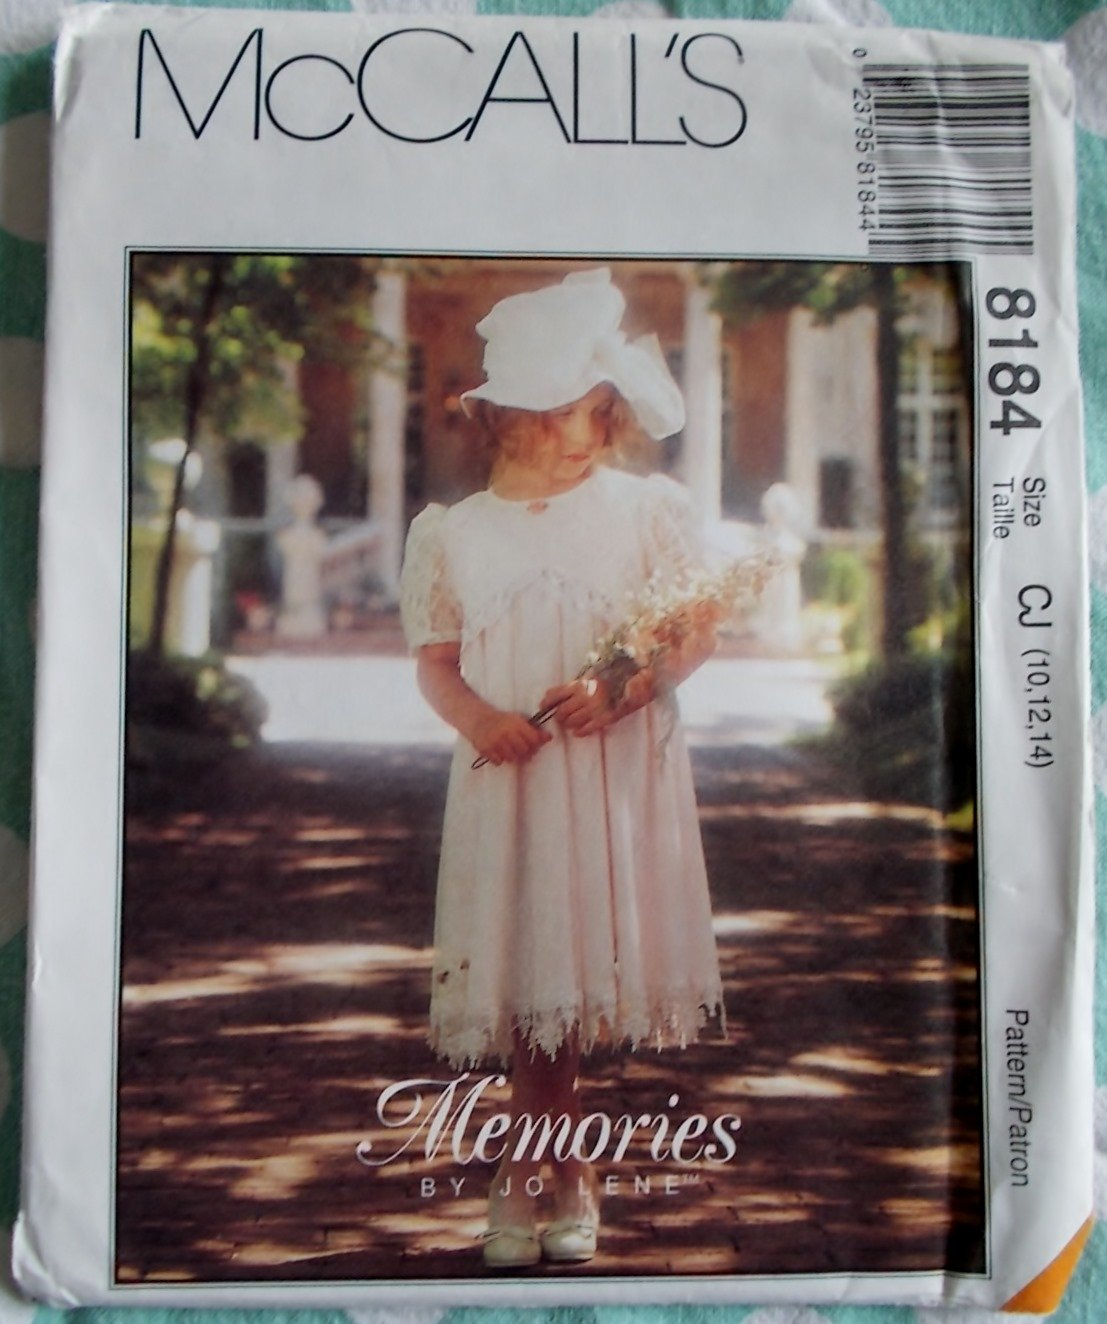 McCalls Memories by Jo Lene 8184 pattern, Childs Dress, Sizes 10, 12, 14, UNCUT